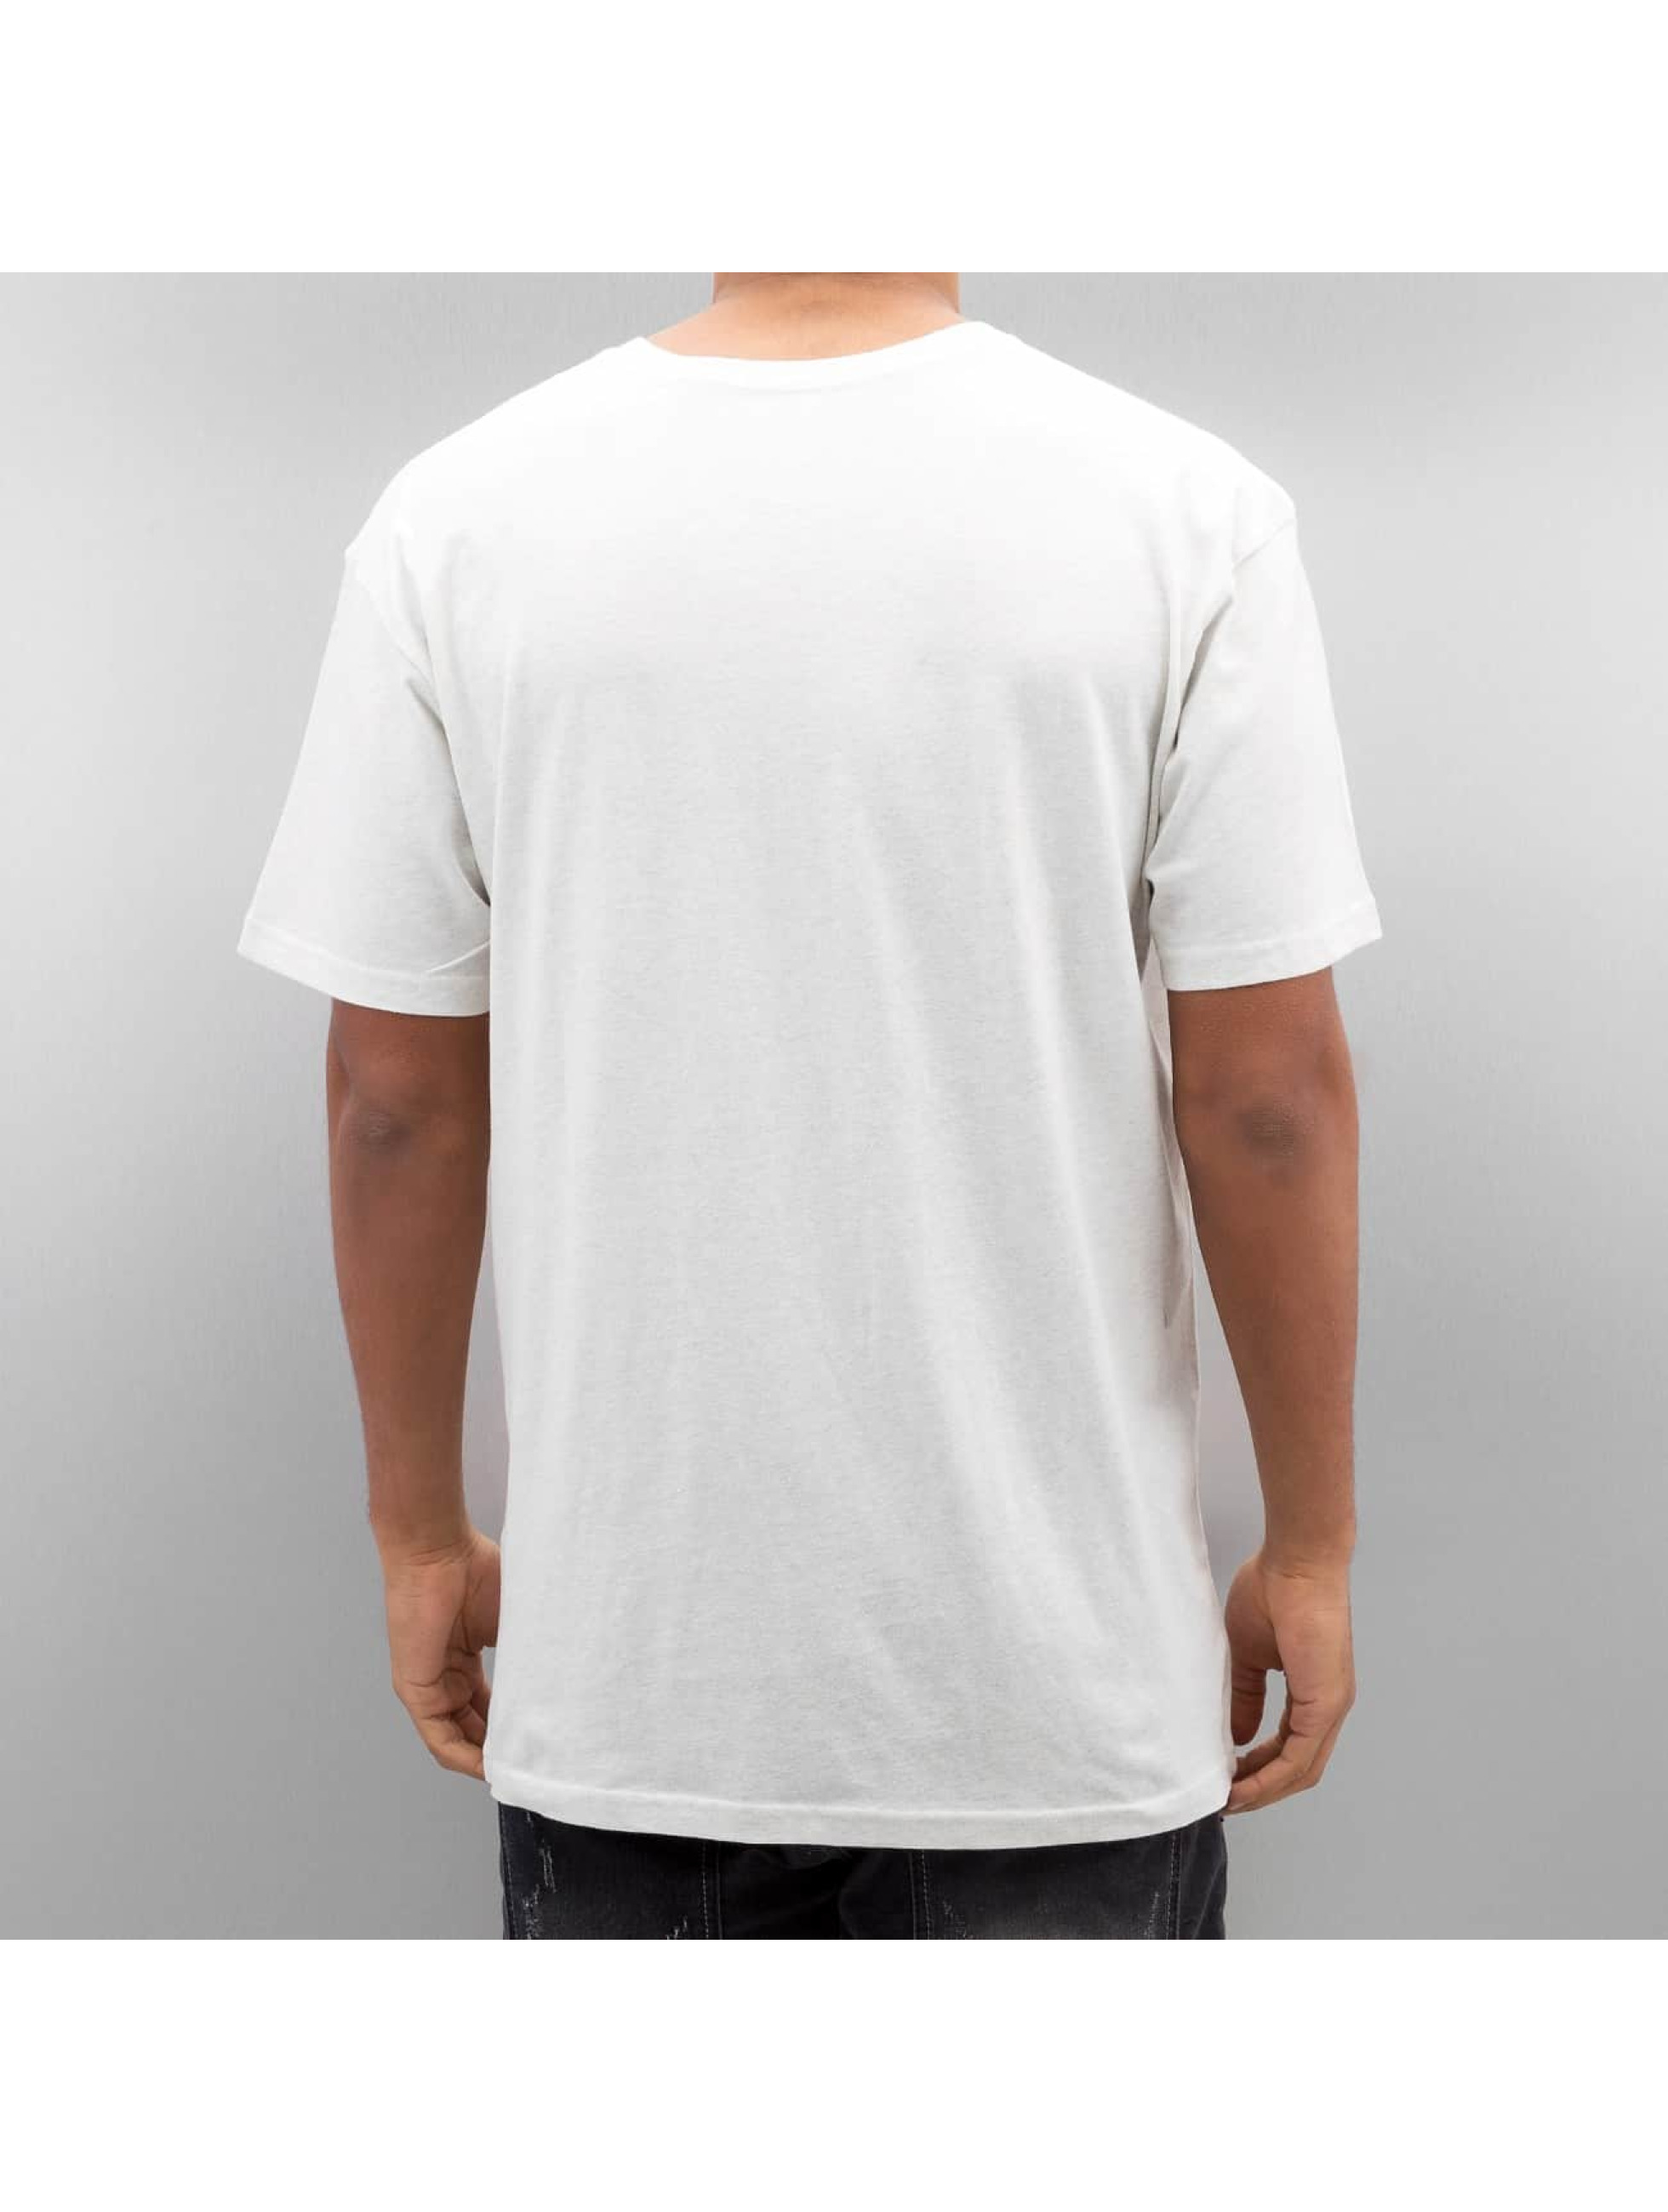 Quiksilver T-Shirt Inverted Heather white